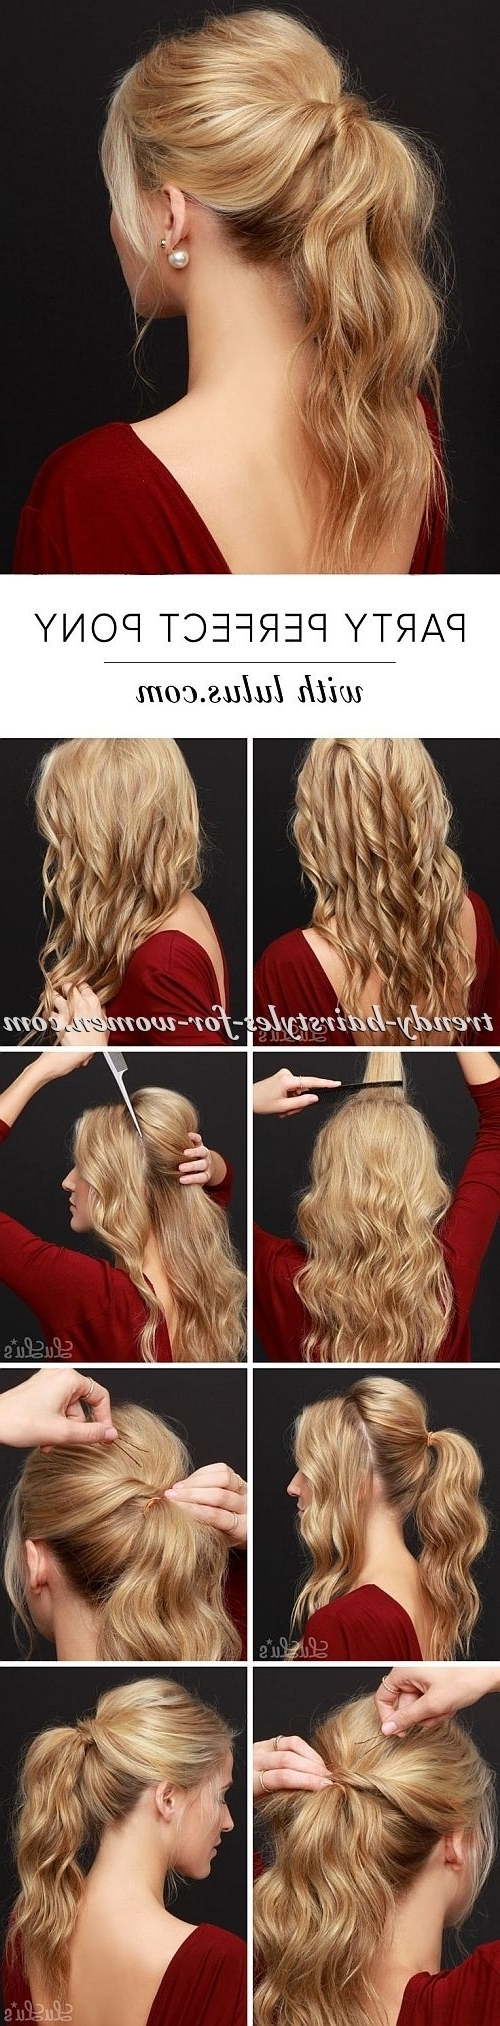 Fashionable Updo Ponytail Hairstyles With Poof Inside 16 Best Ponytail Tutorials That Will Make You A Pony Hairstyling Expert! (View 16 of 20)